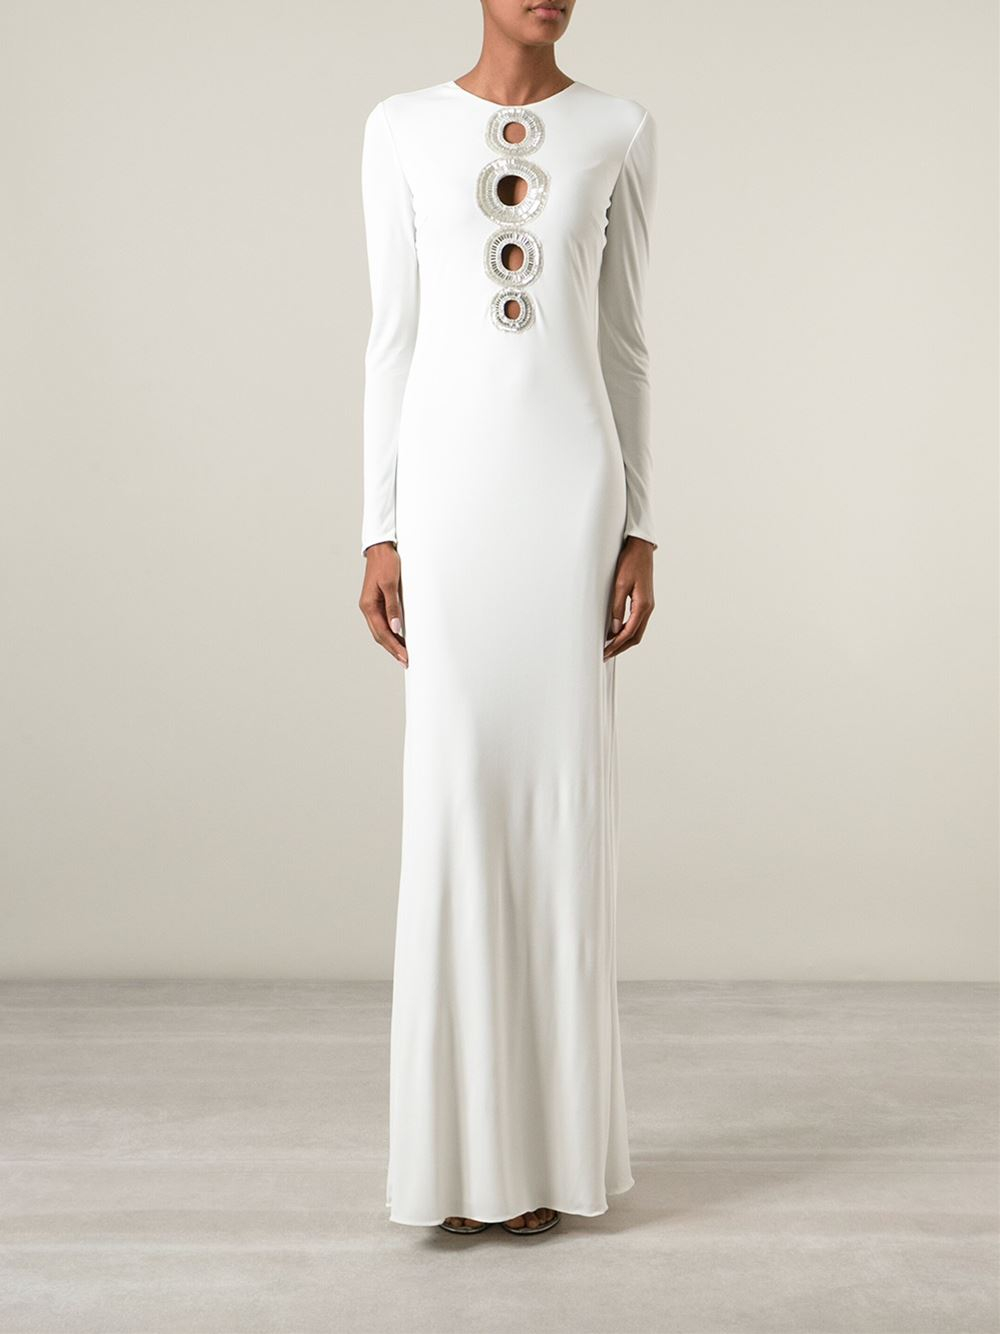 Emilio pucci Embellished Circle Dress in White | Lyst